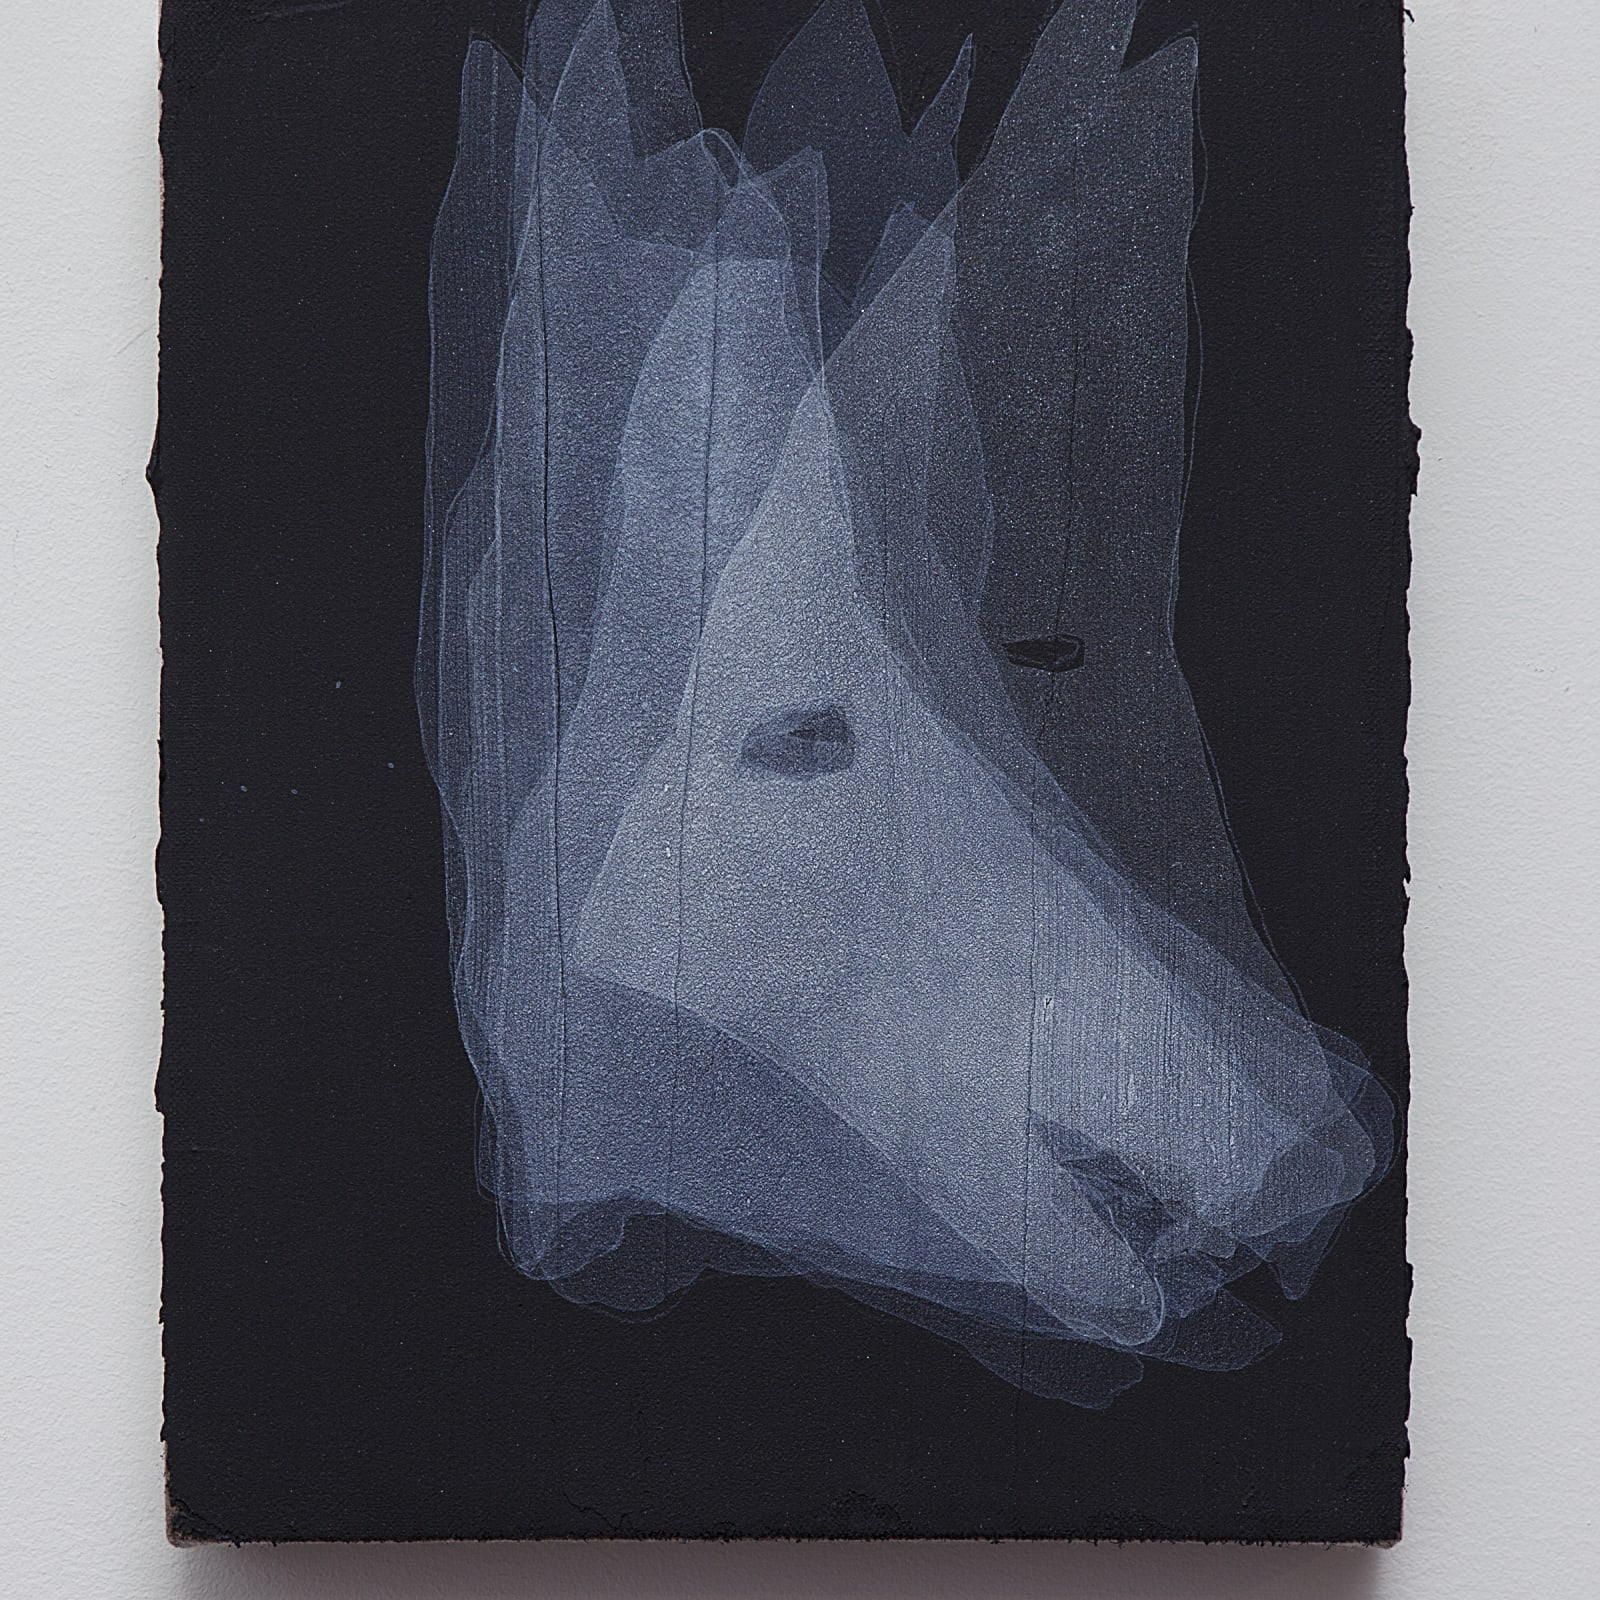 Duane Slick, A Thought Leaving the Body, 2013